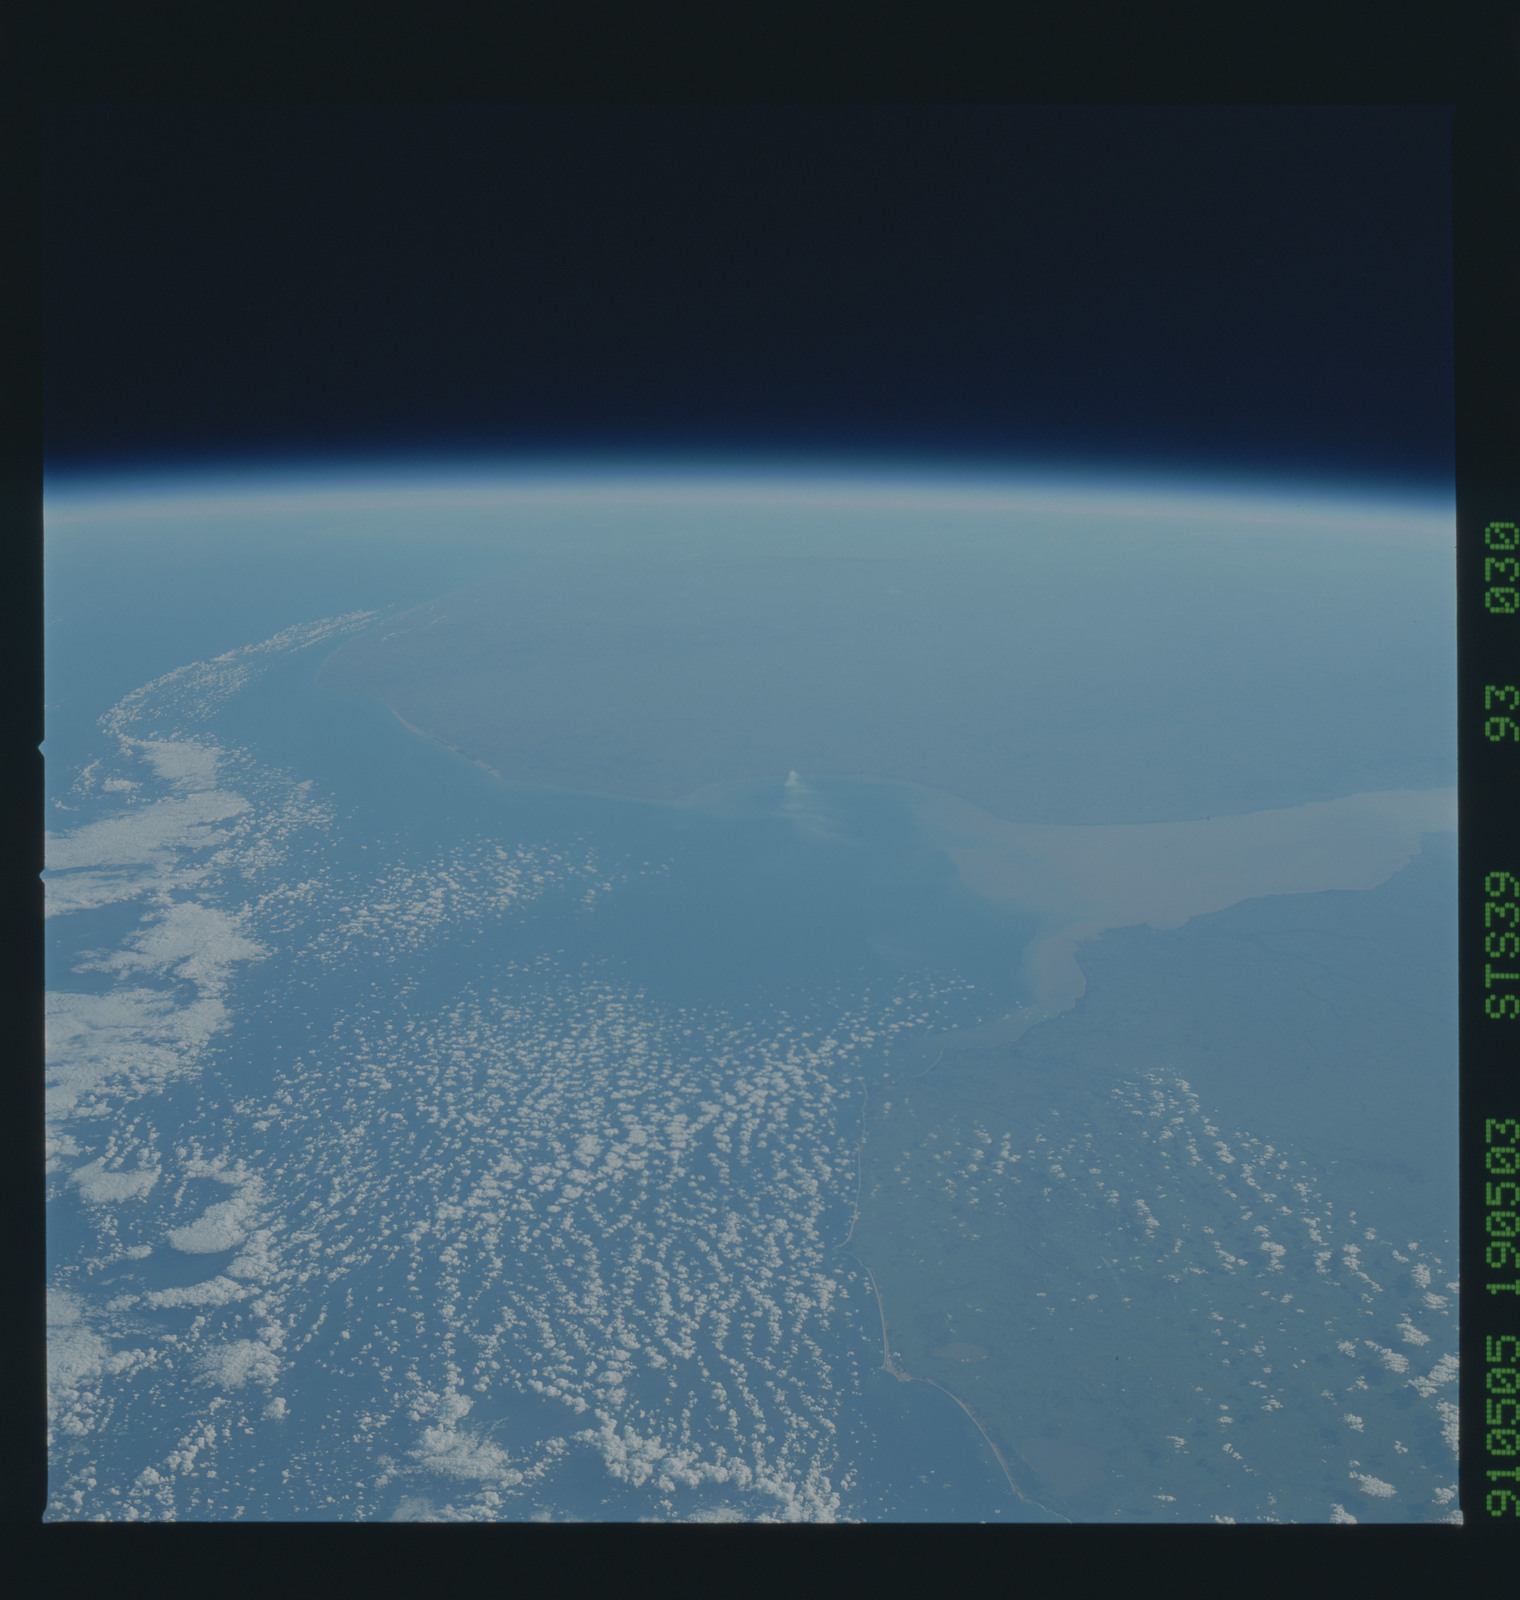 S39-93-030 - STS-039 - STS-39 earth observations